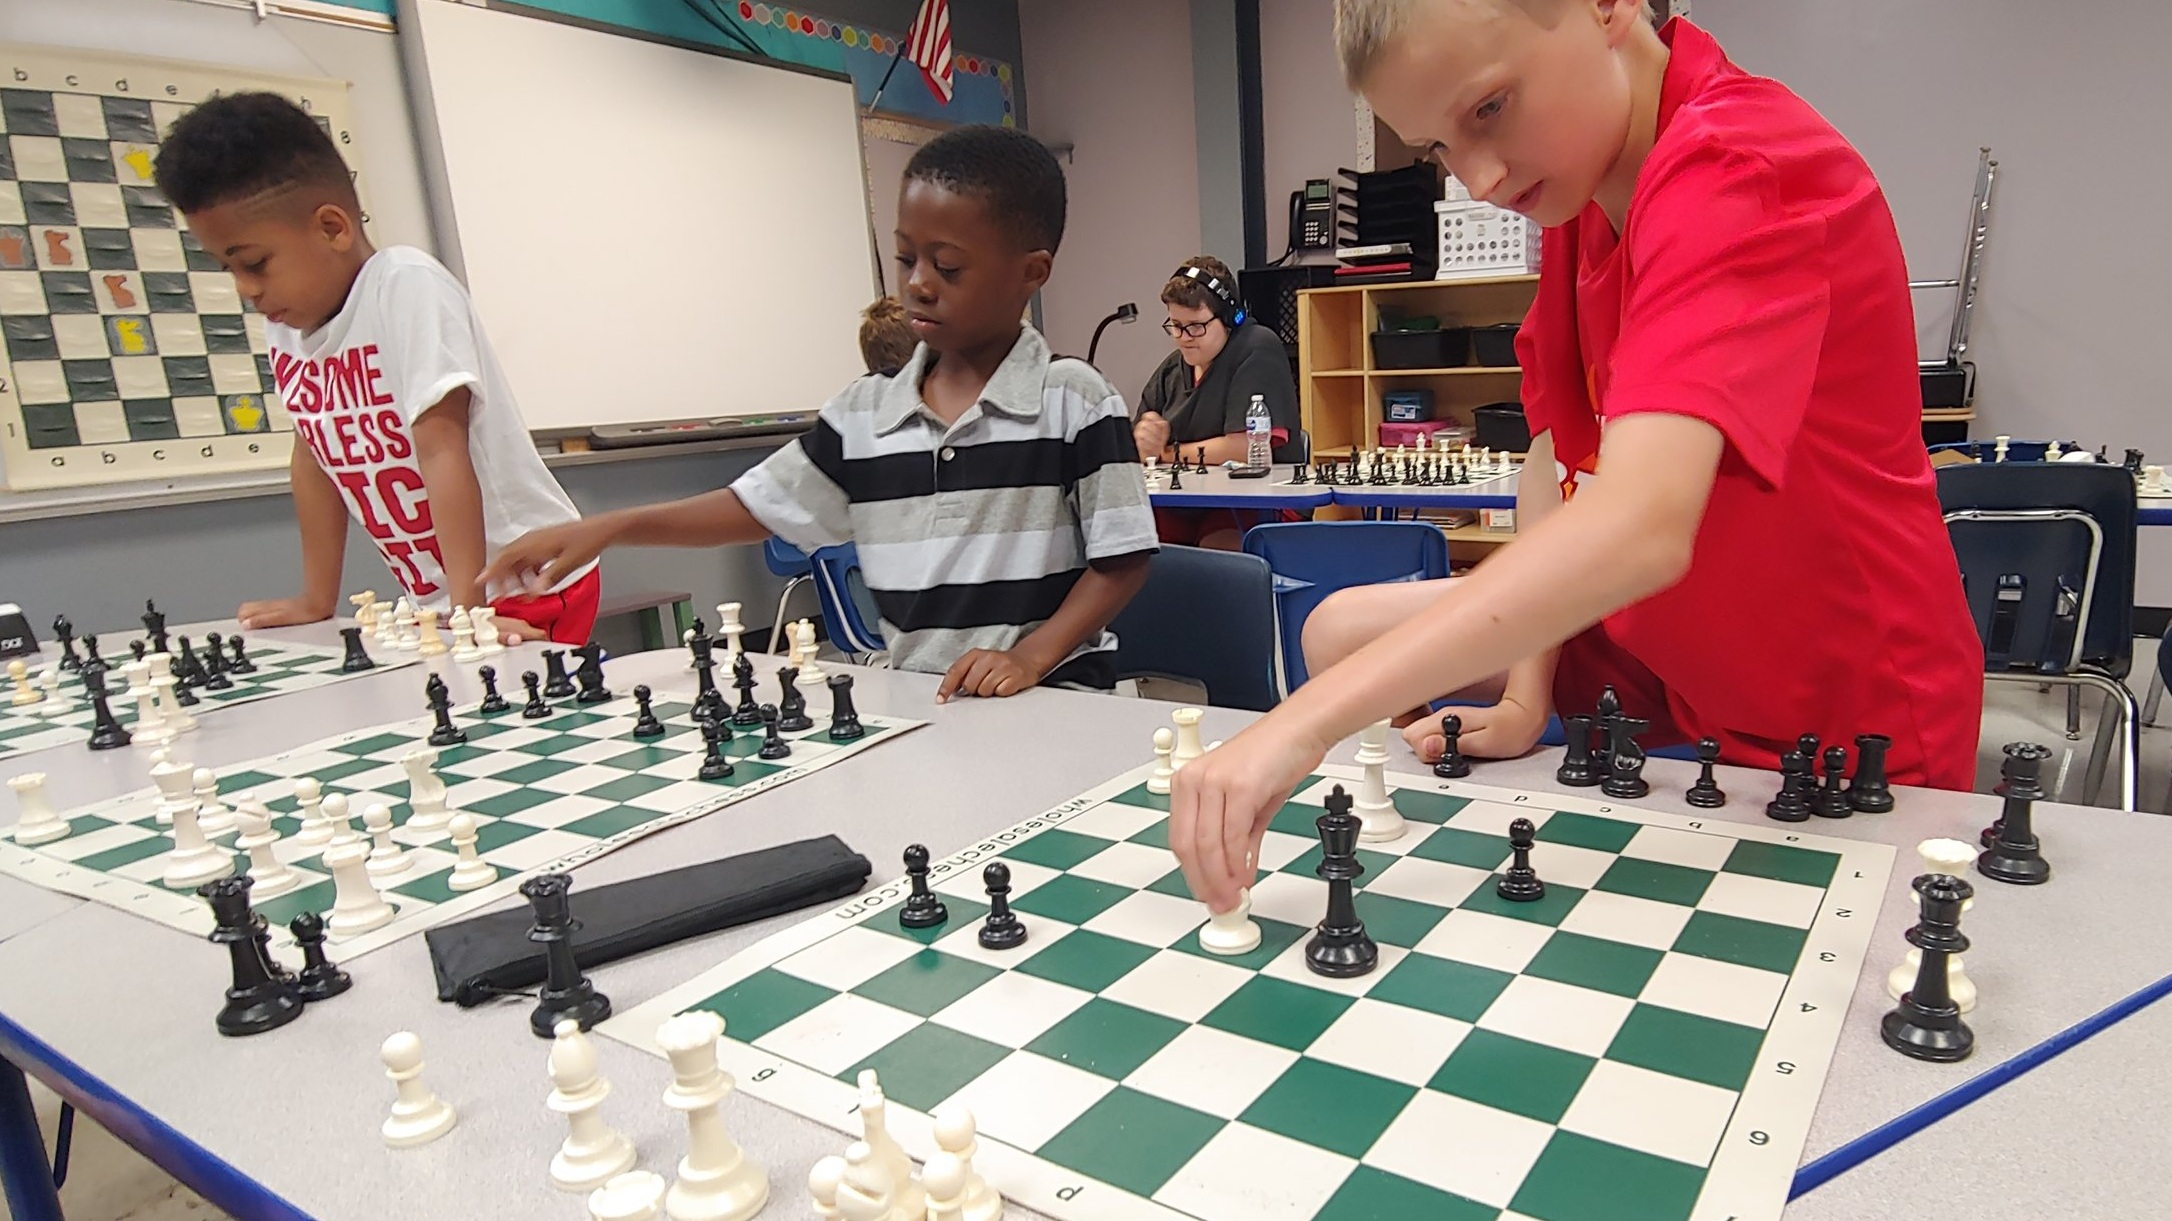 7-year-old Izaiah, center, practices his favorite moves at LINC's summer chess camp July 17 at Genesis School.